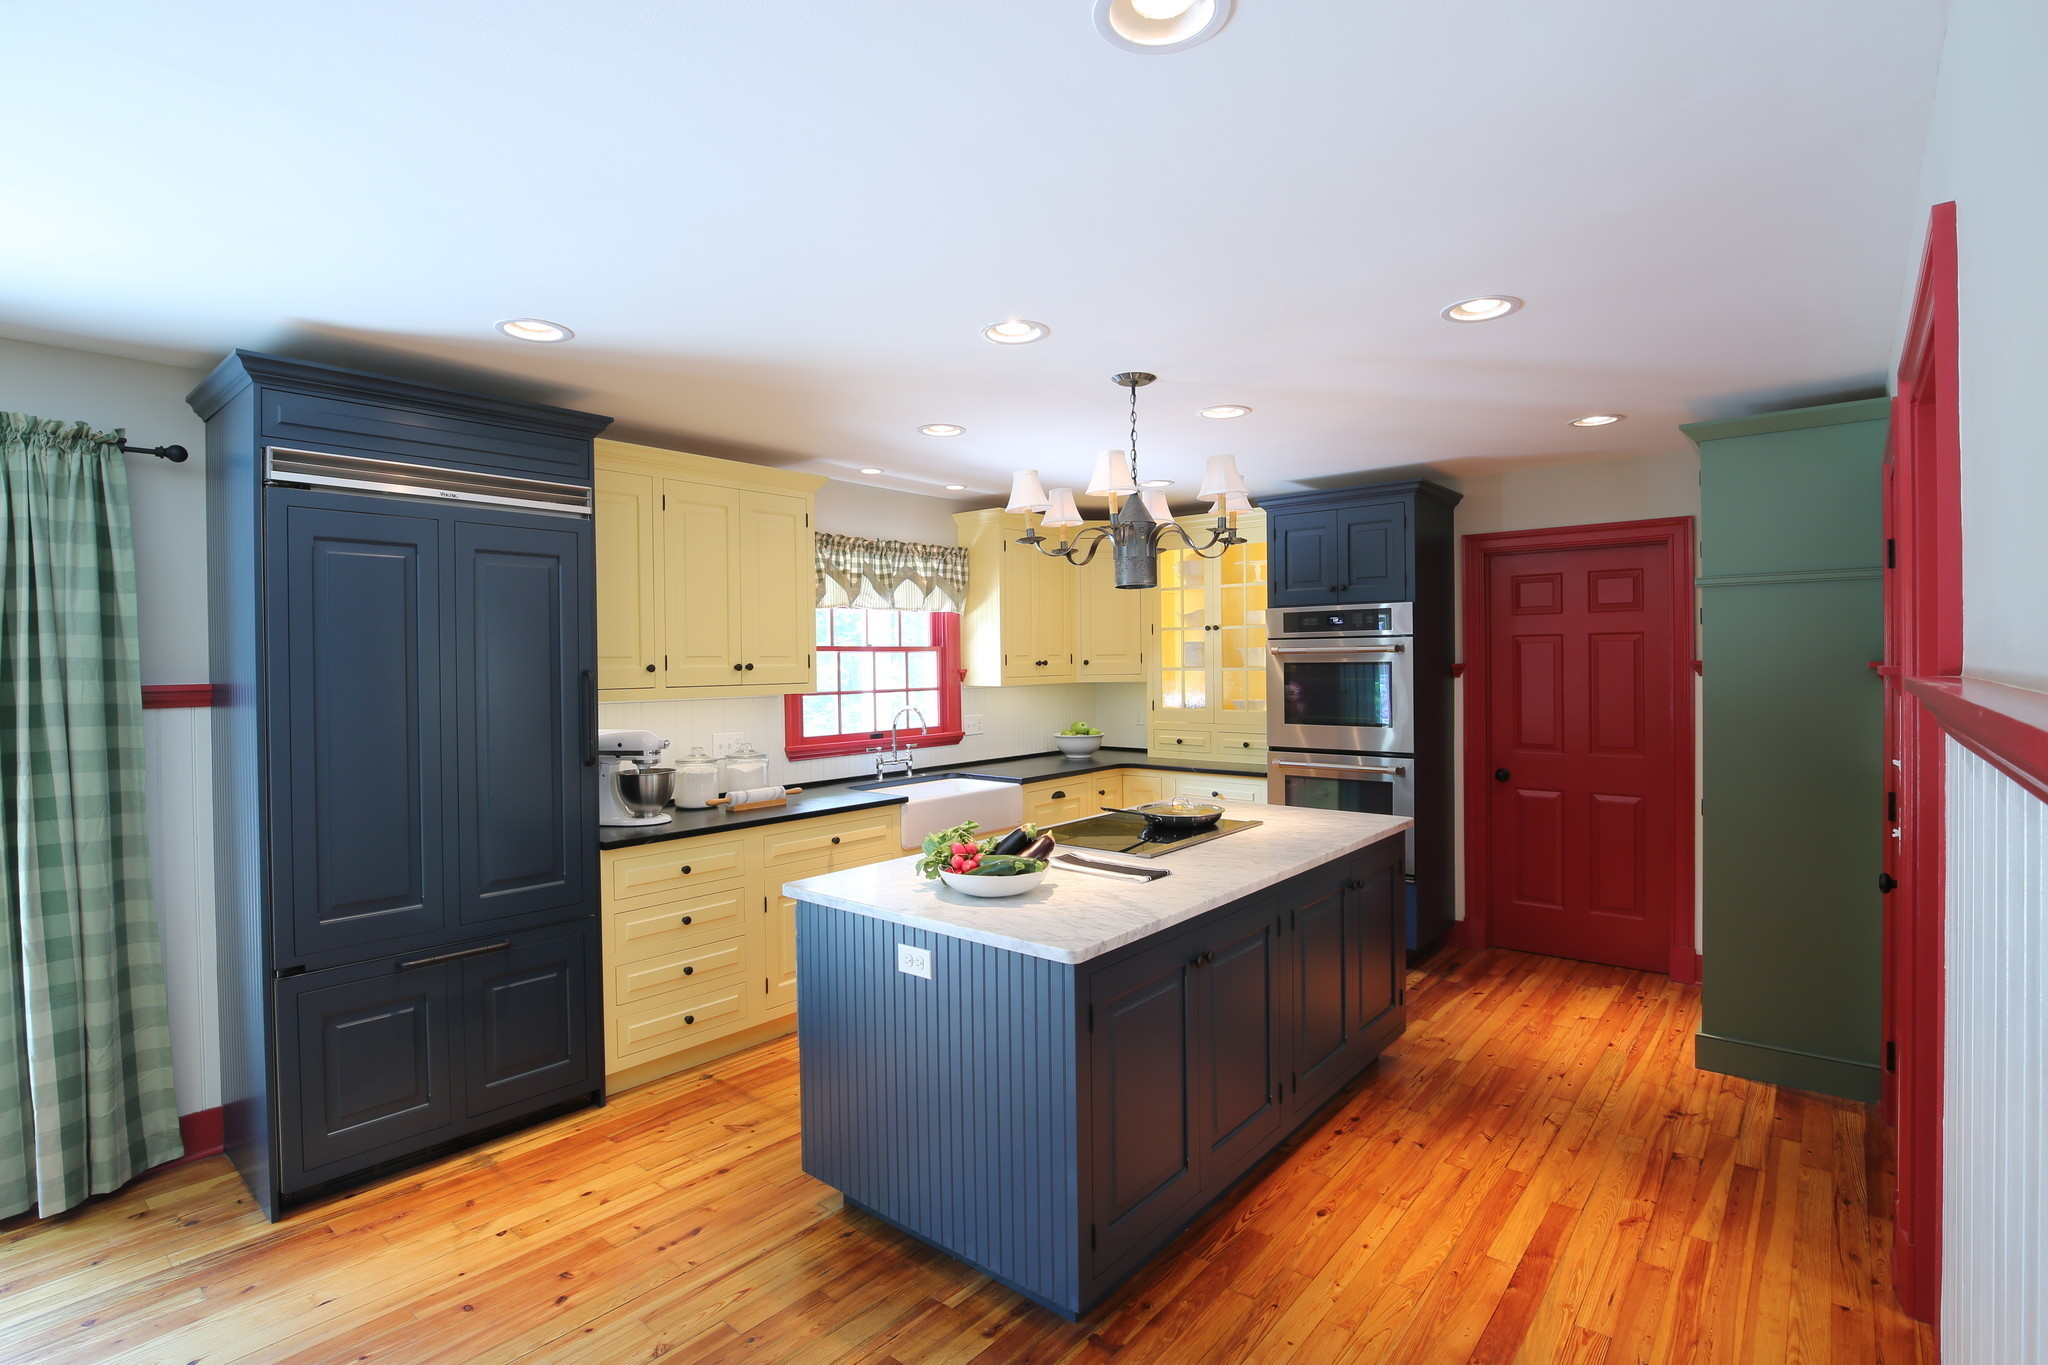 Kitchens With Character Days Of All White Cabinets